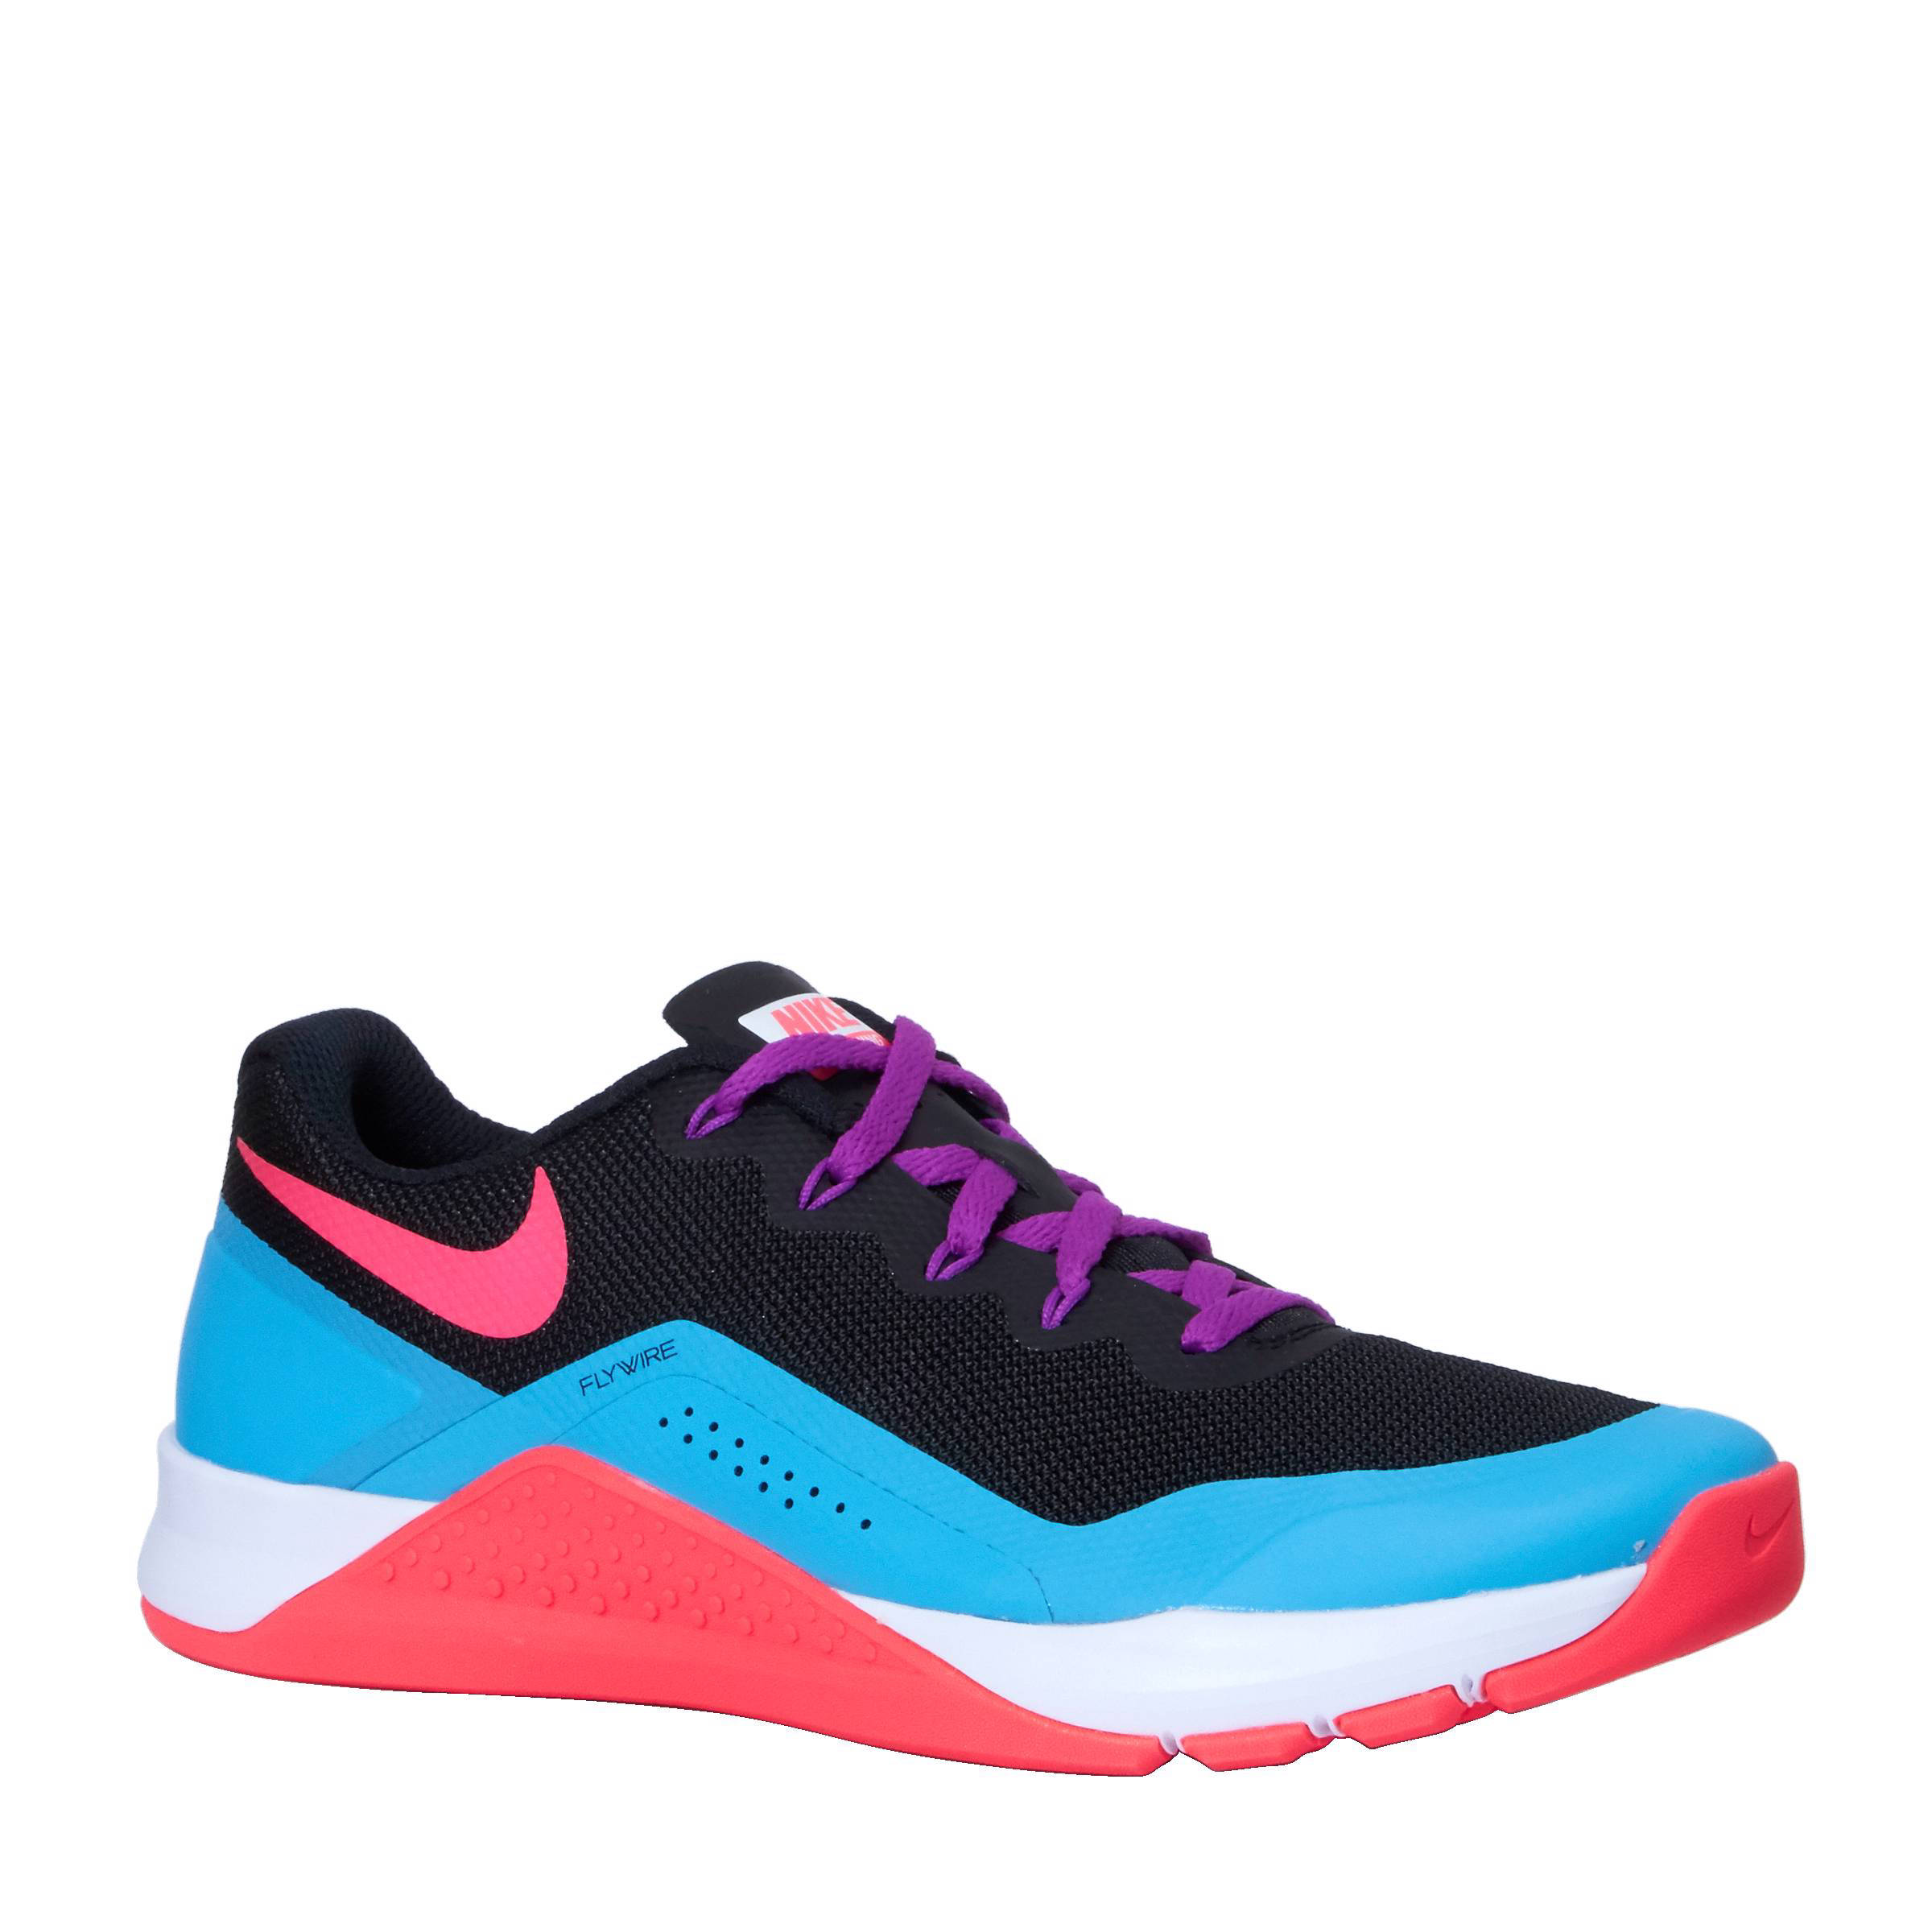 huge selection of 6af2e 3c23b nike-fitness-schoenen-metcon-repper-dsx-dames-zwart-0826215569602.jpg